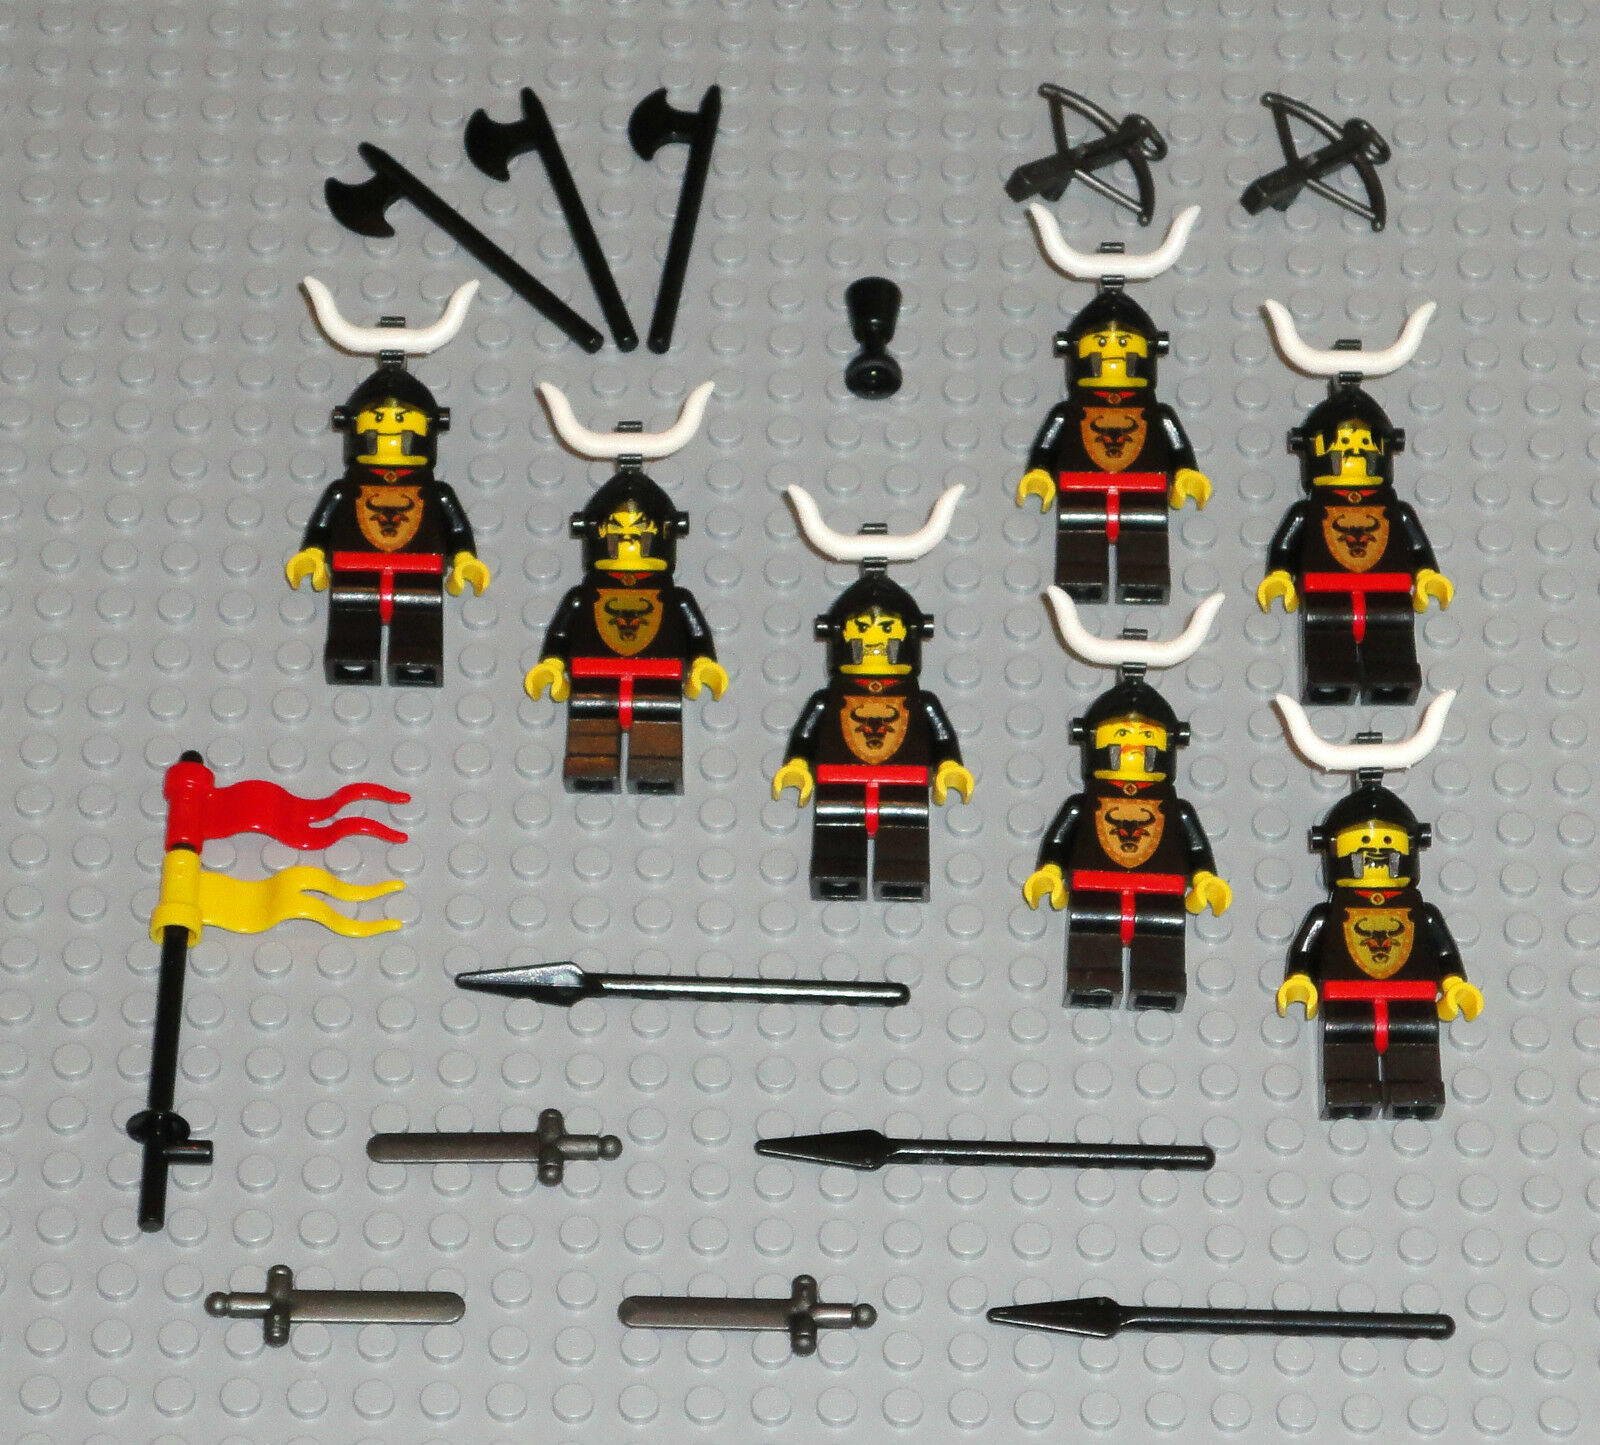 LEGO Minifigures Lot 7 Bull Castle Knights Knights Knights People Swords Weapons Guys Minifigs 1d87af